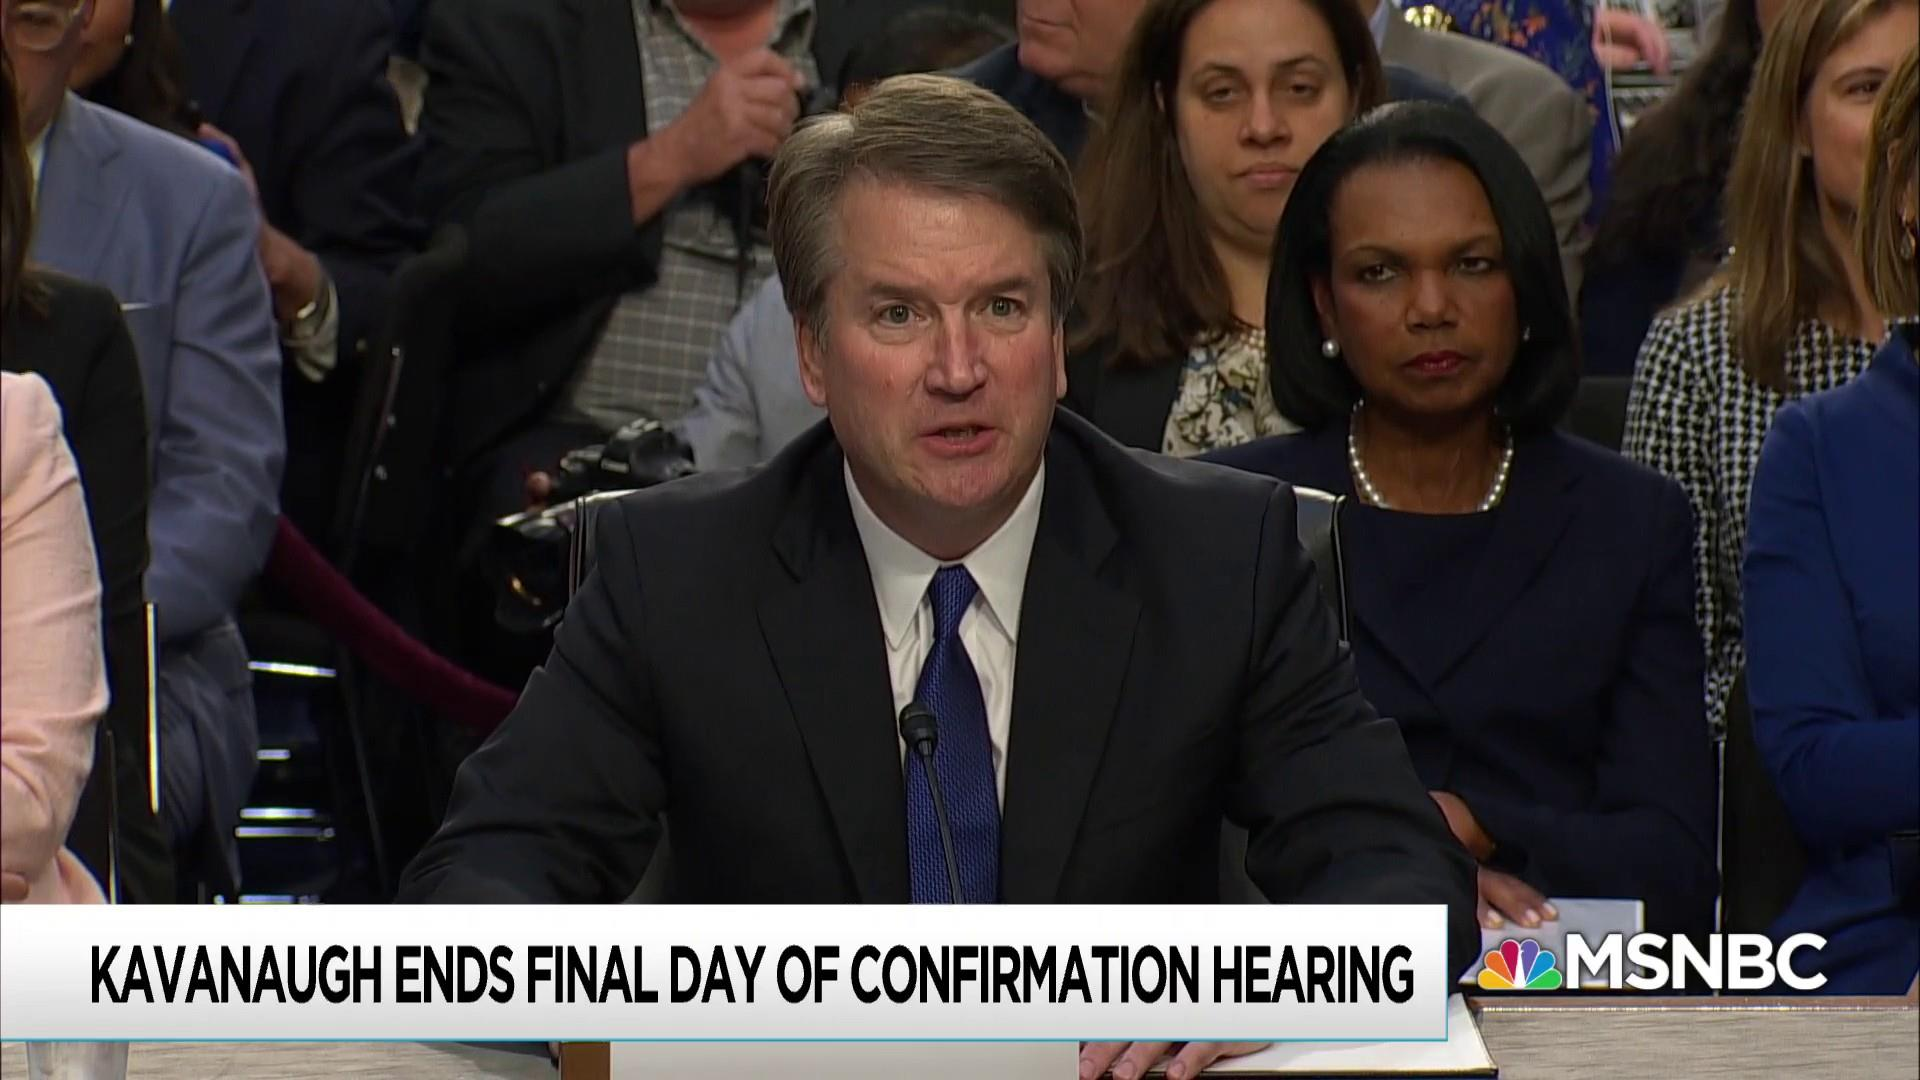 Confirmation hearing maybe too revealing for Kavanaugh's comfort